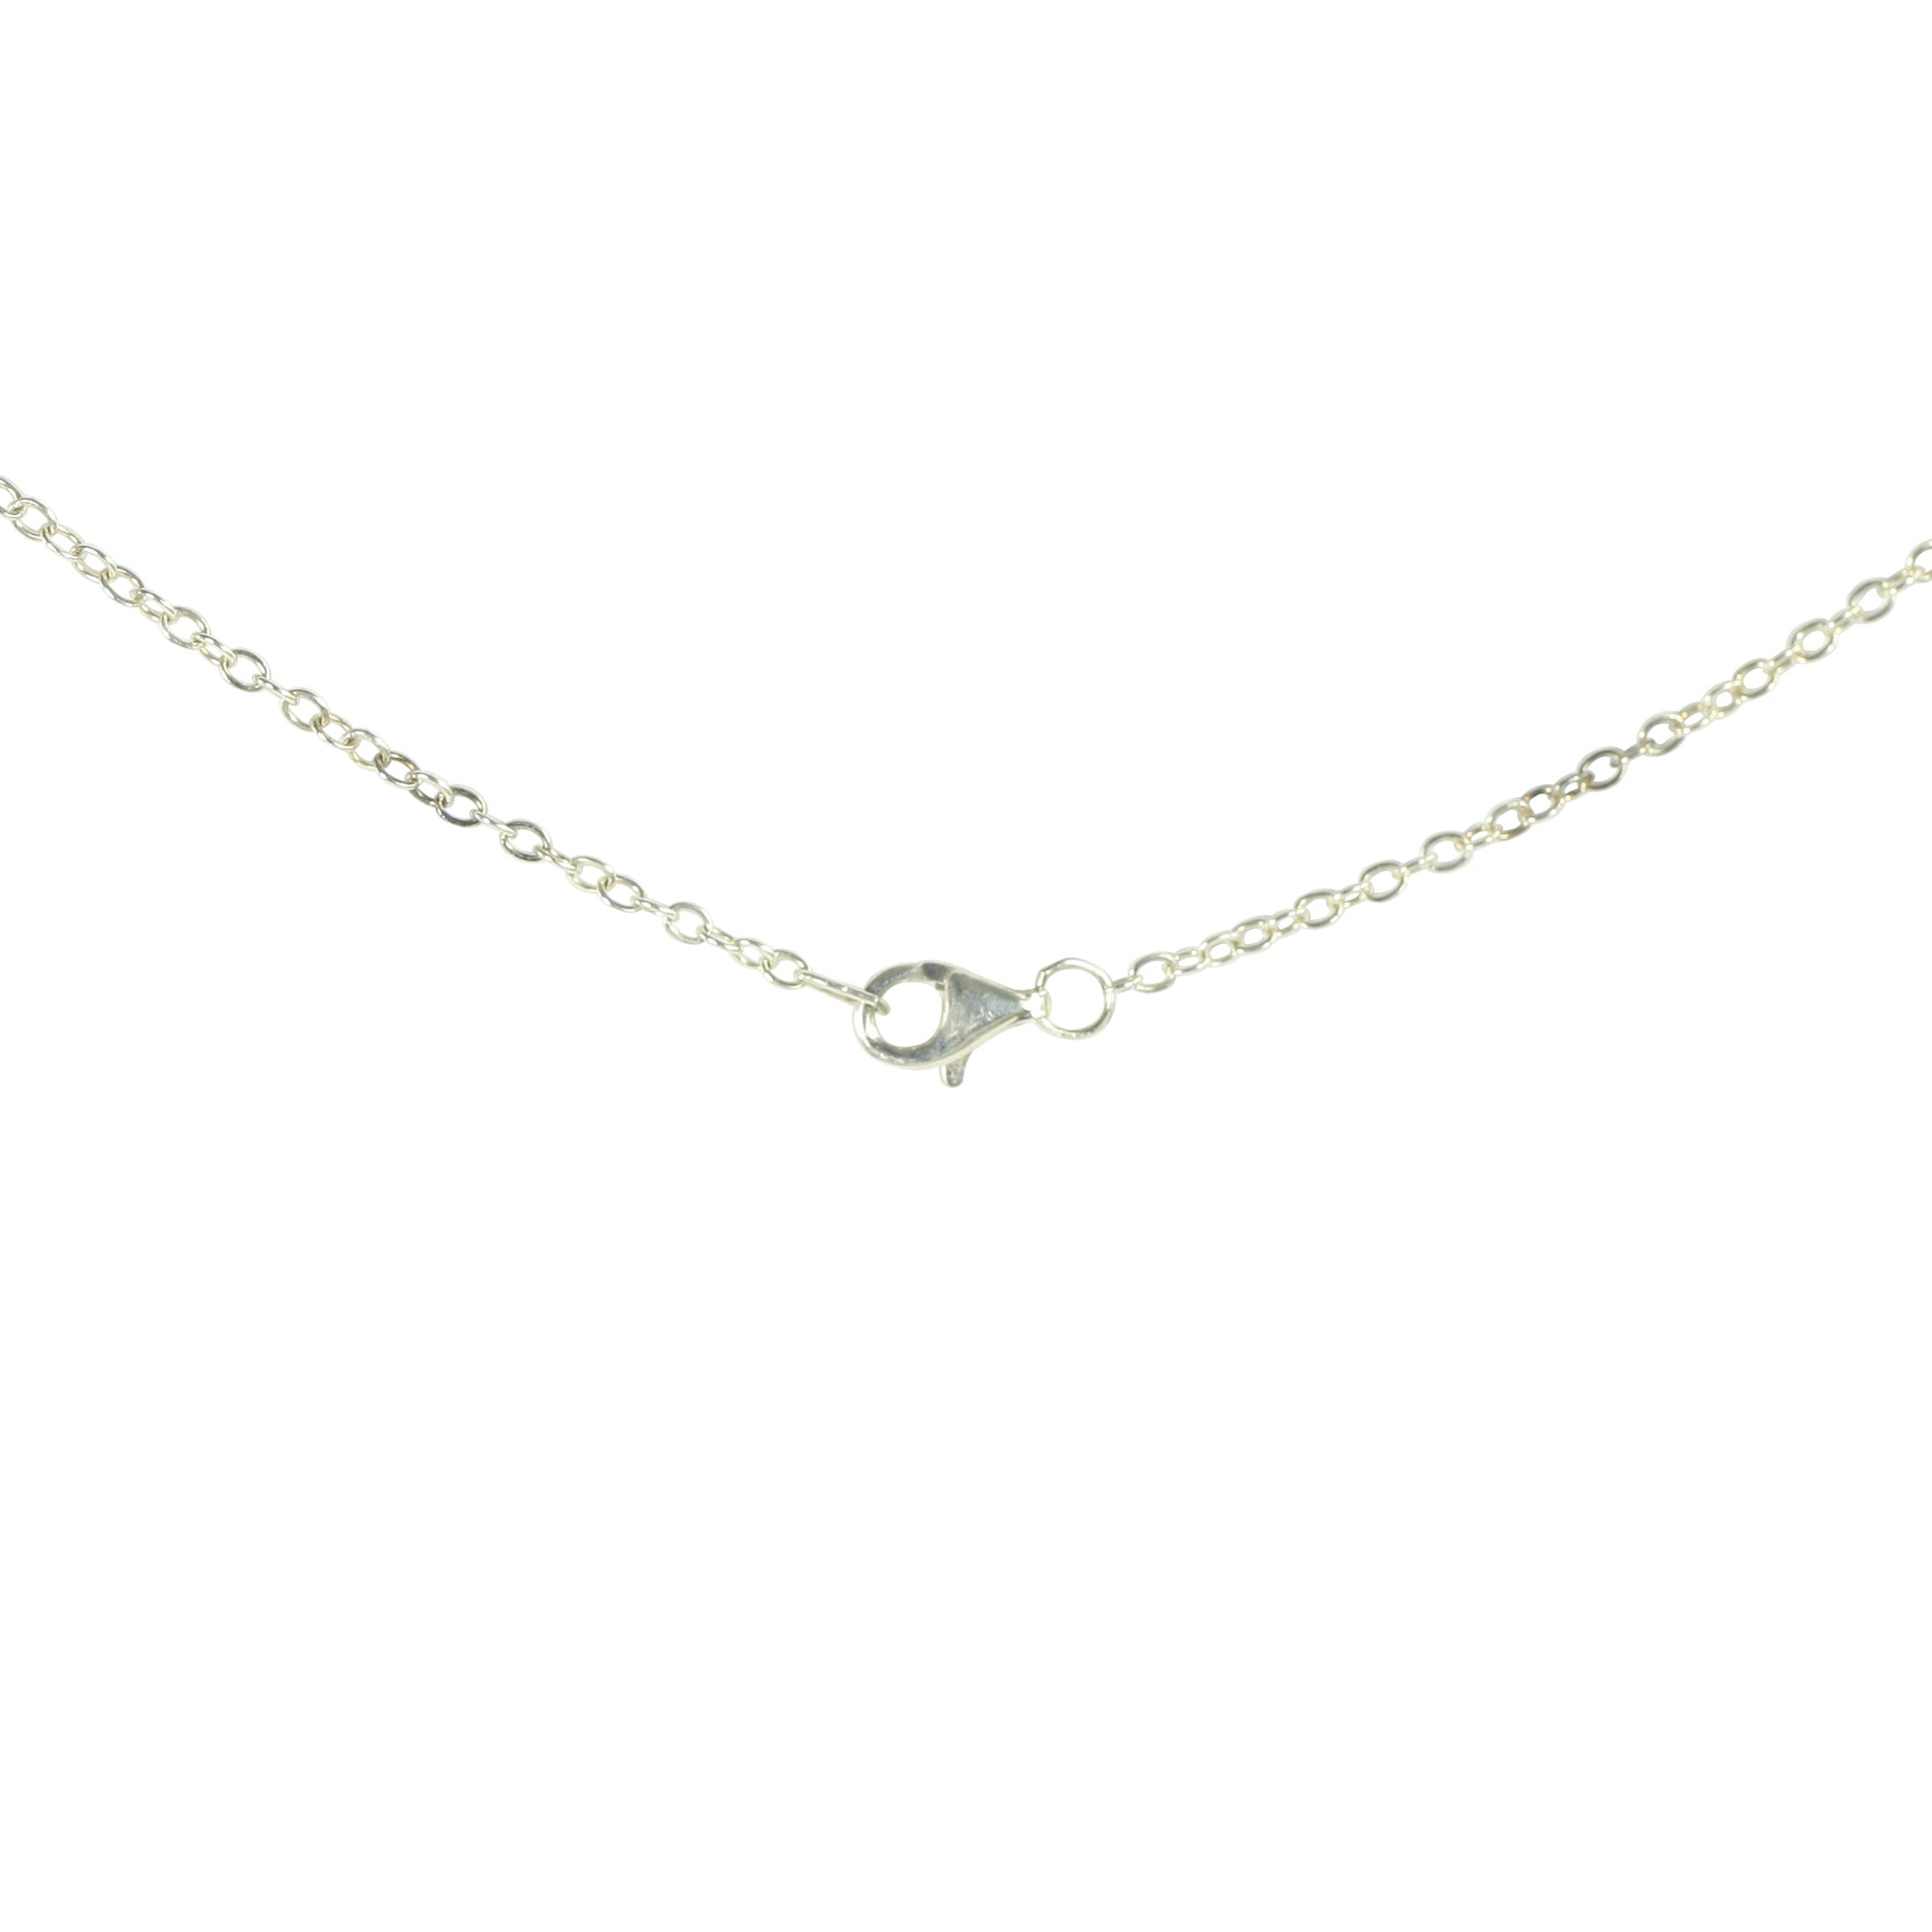 sterling l necklace product free shipping g over watches overstock initial on jewelry letter orders silver pendant